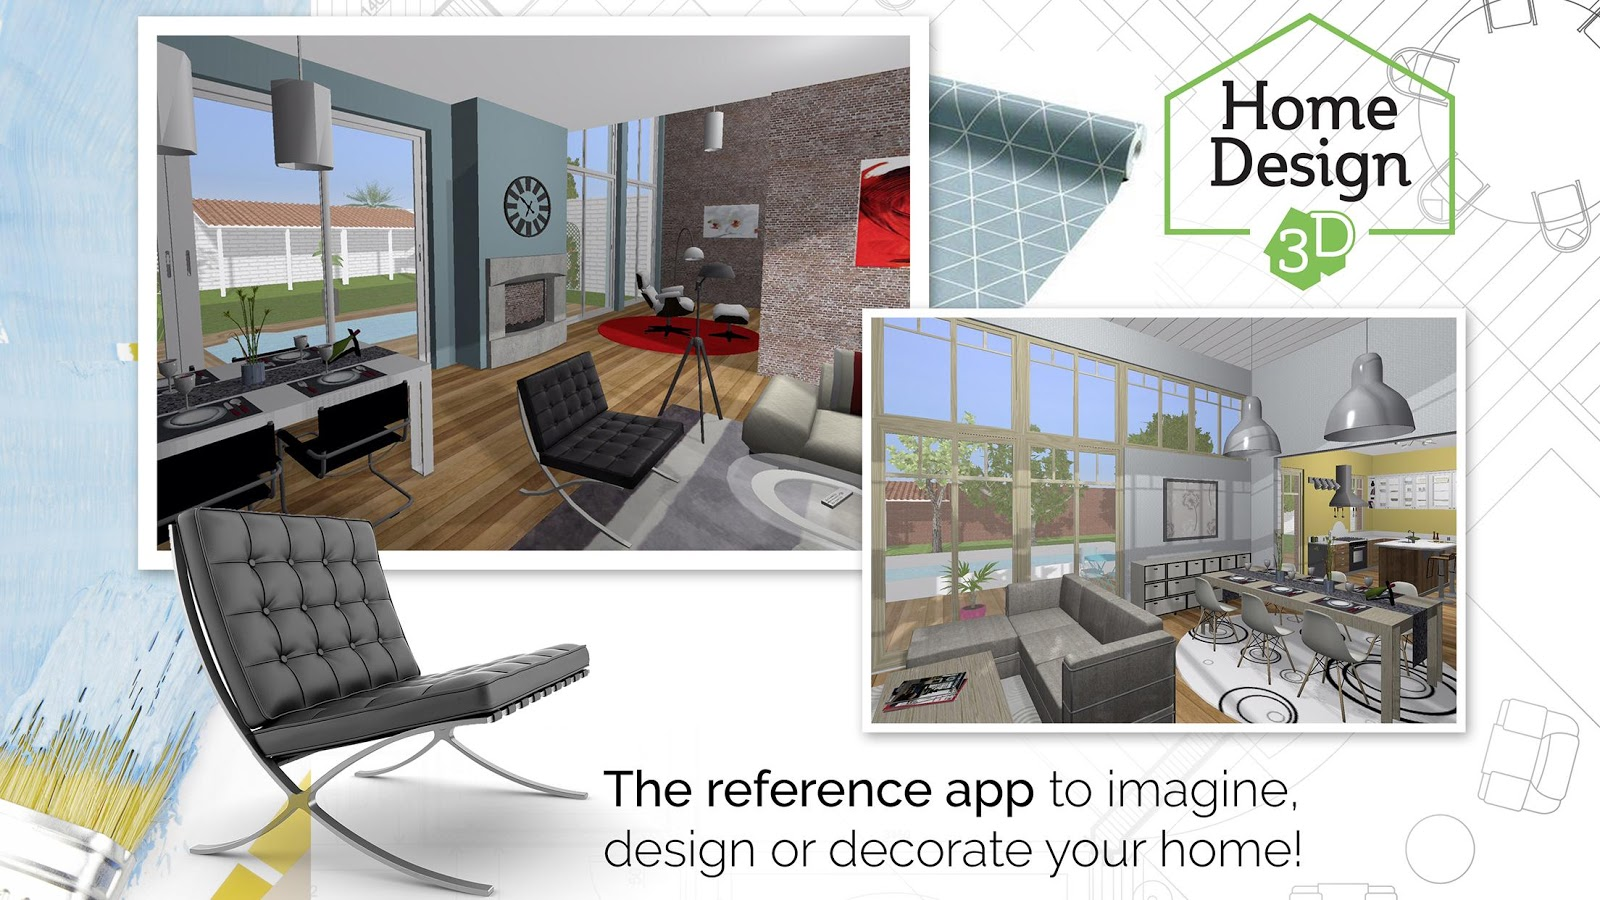 Home design 3d freemium android apps on google play Home design apps for windows